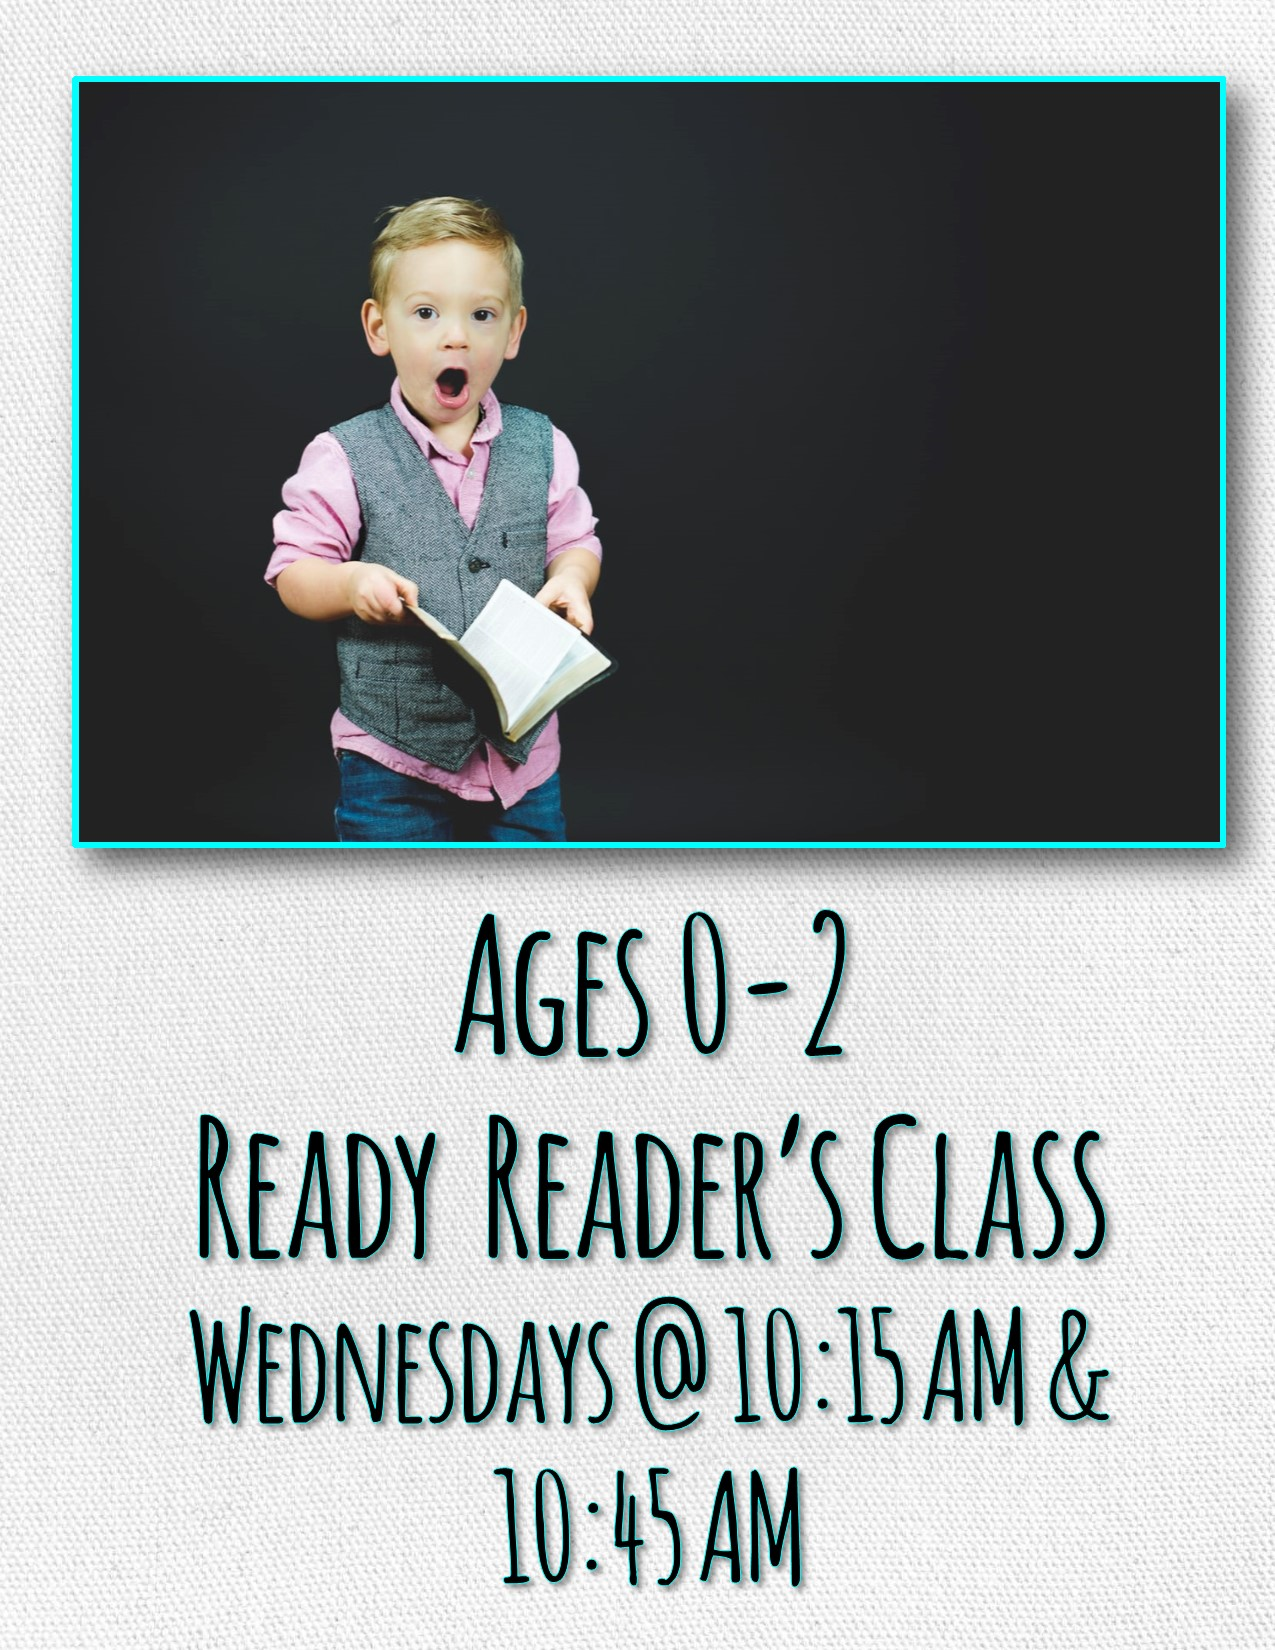 Ages 0-2 Ready Reader's Class